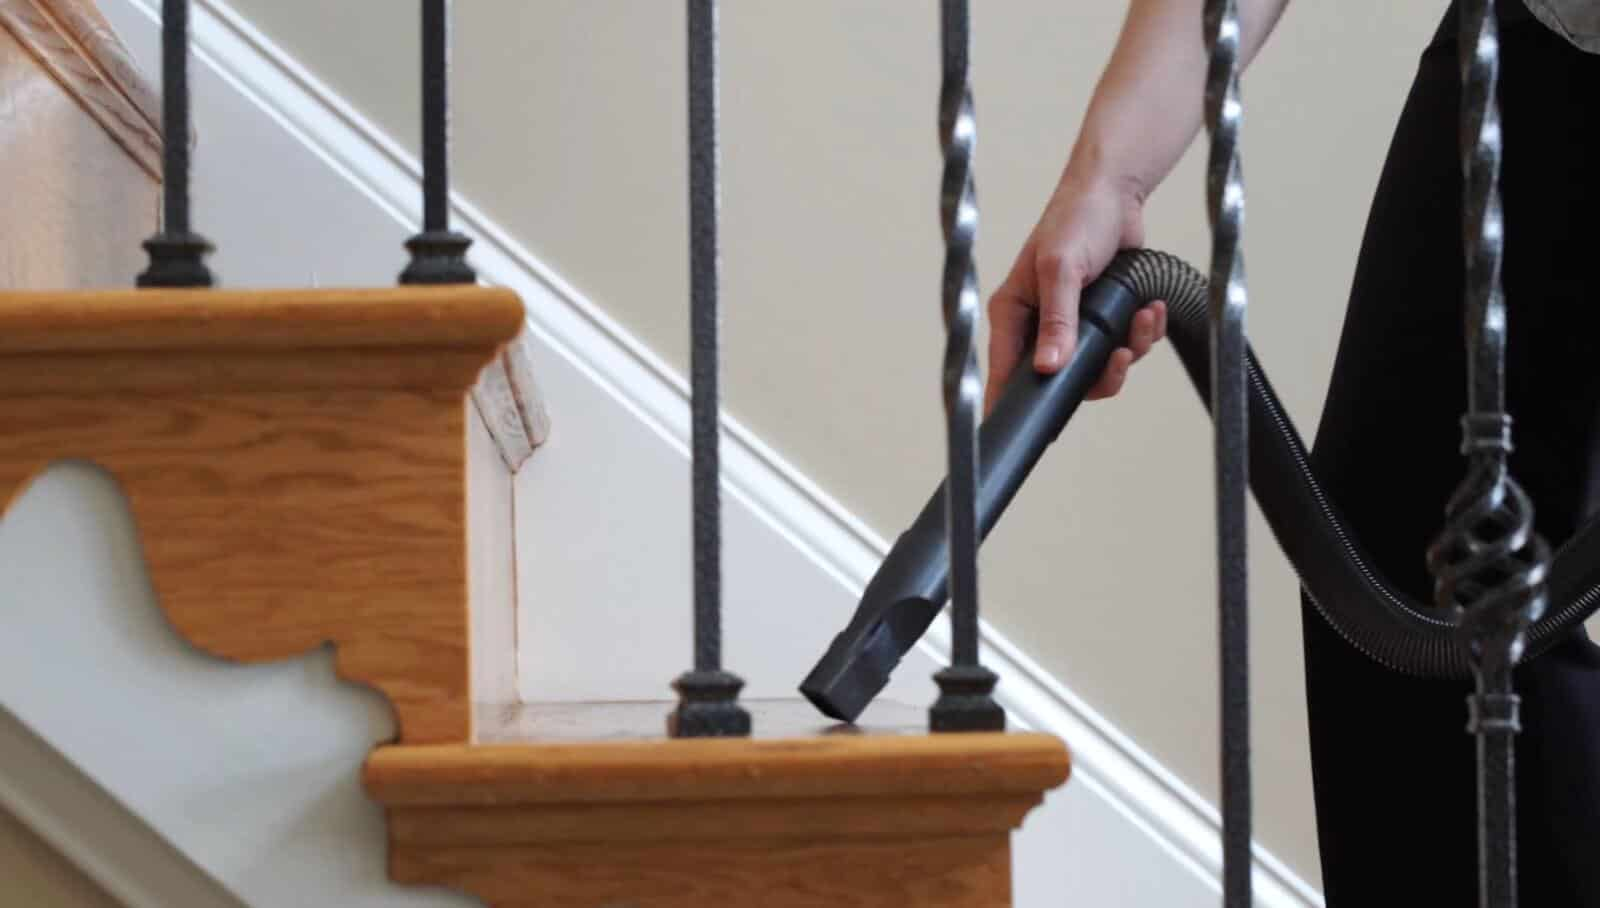 Canister Vacuums perform better on stairs